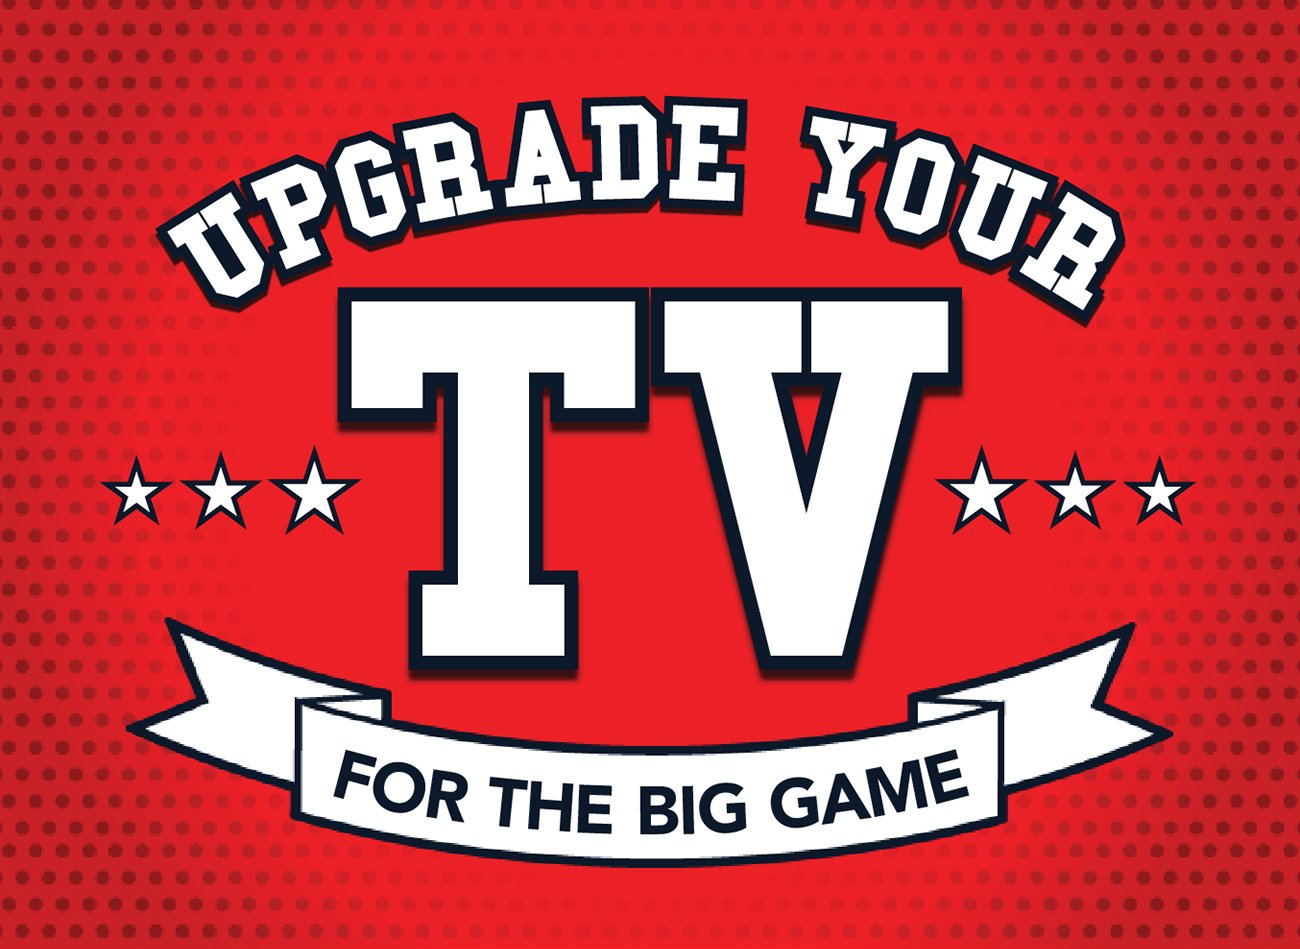 Upgrade-your-tv